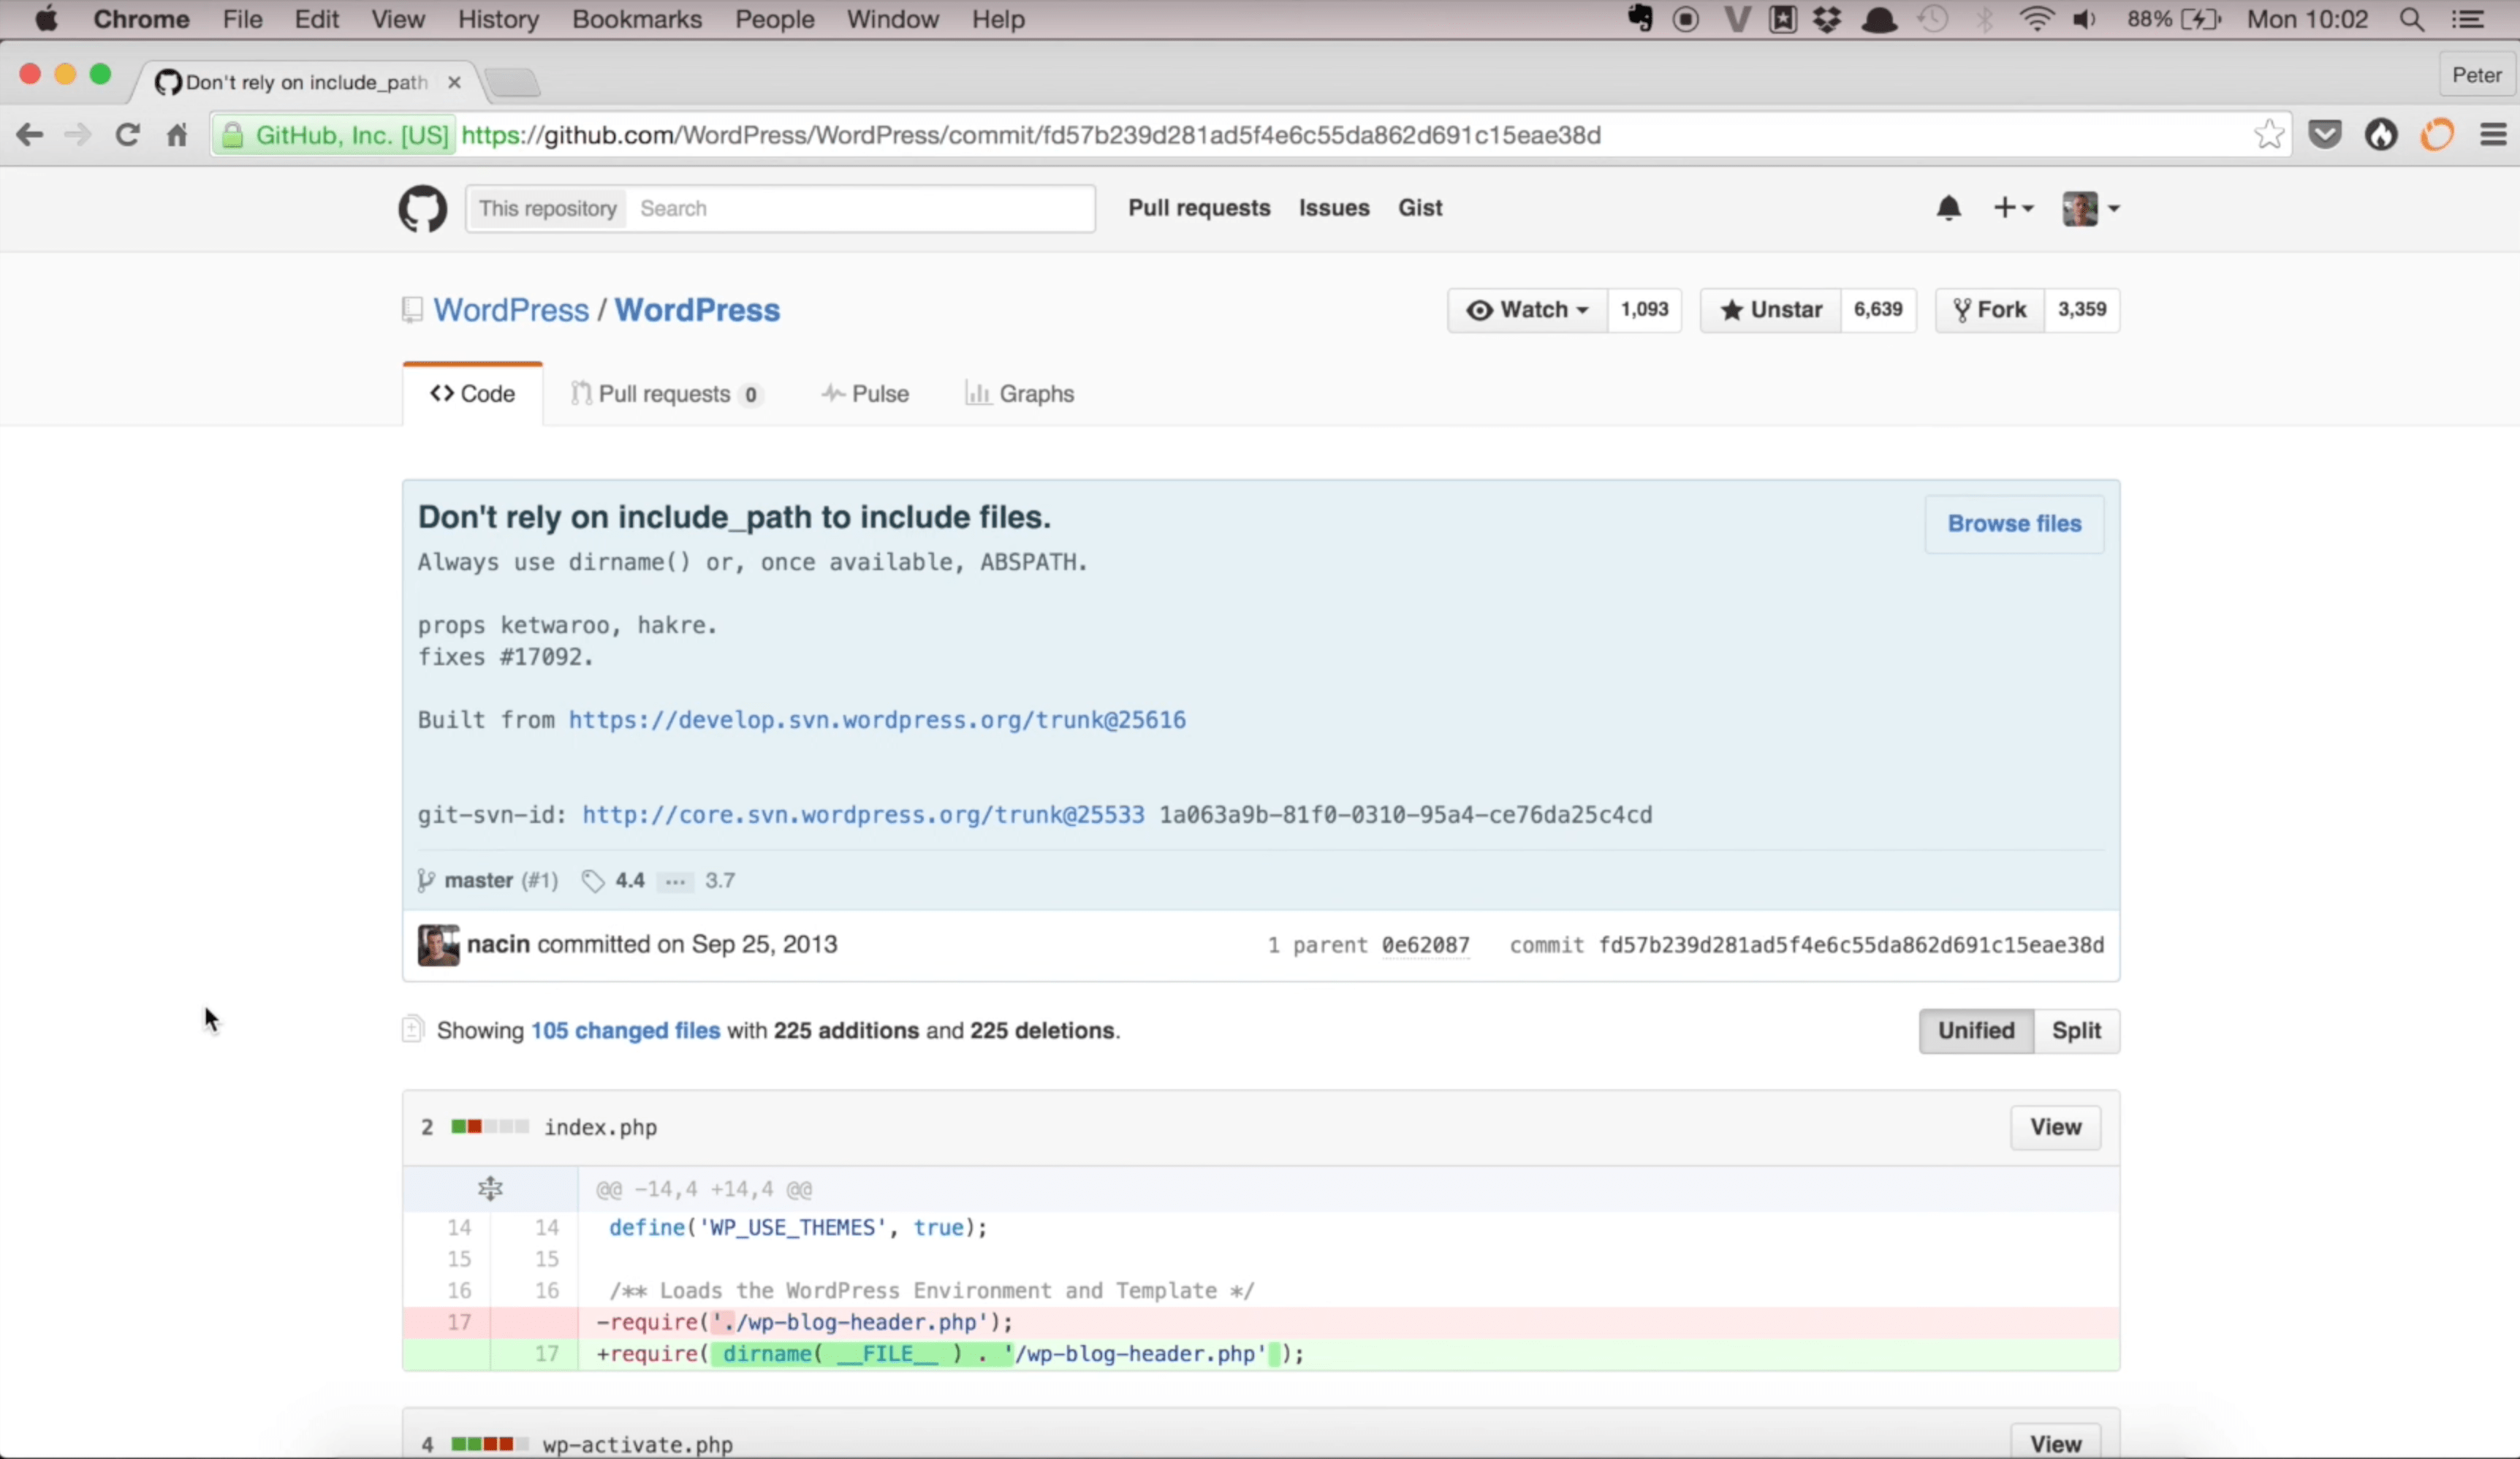 Commit on GitHub by Nacin